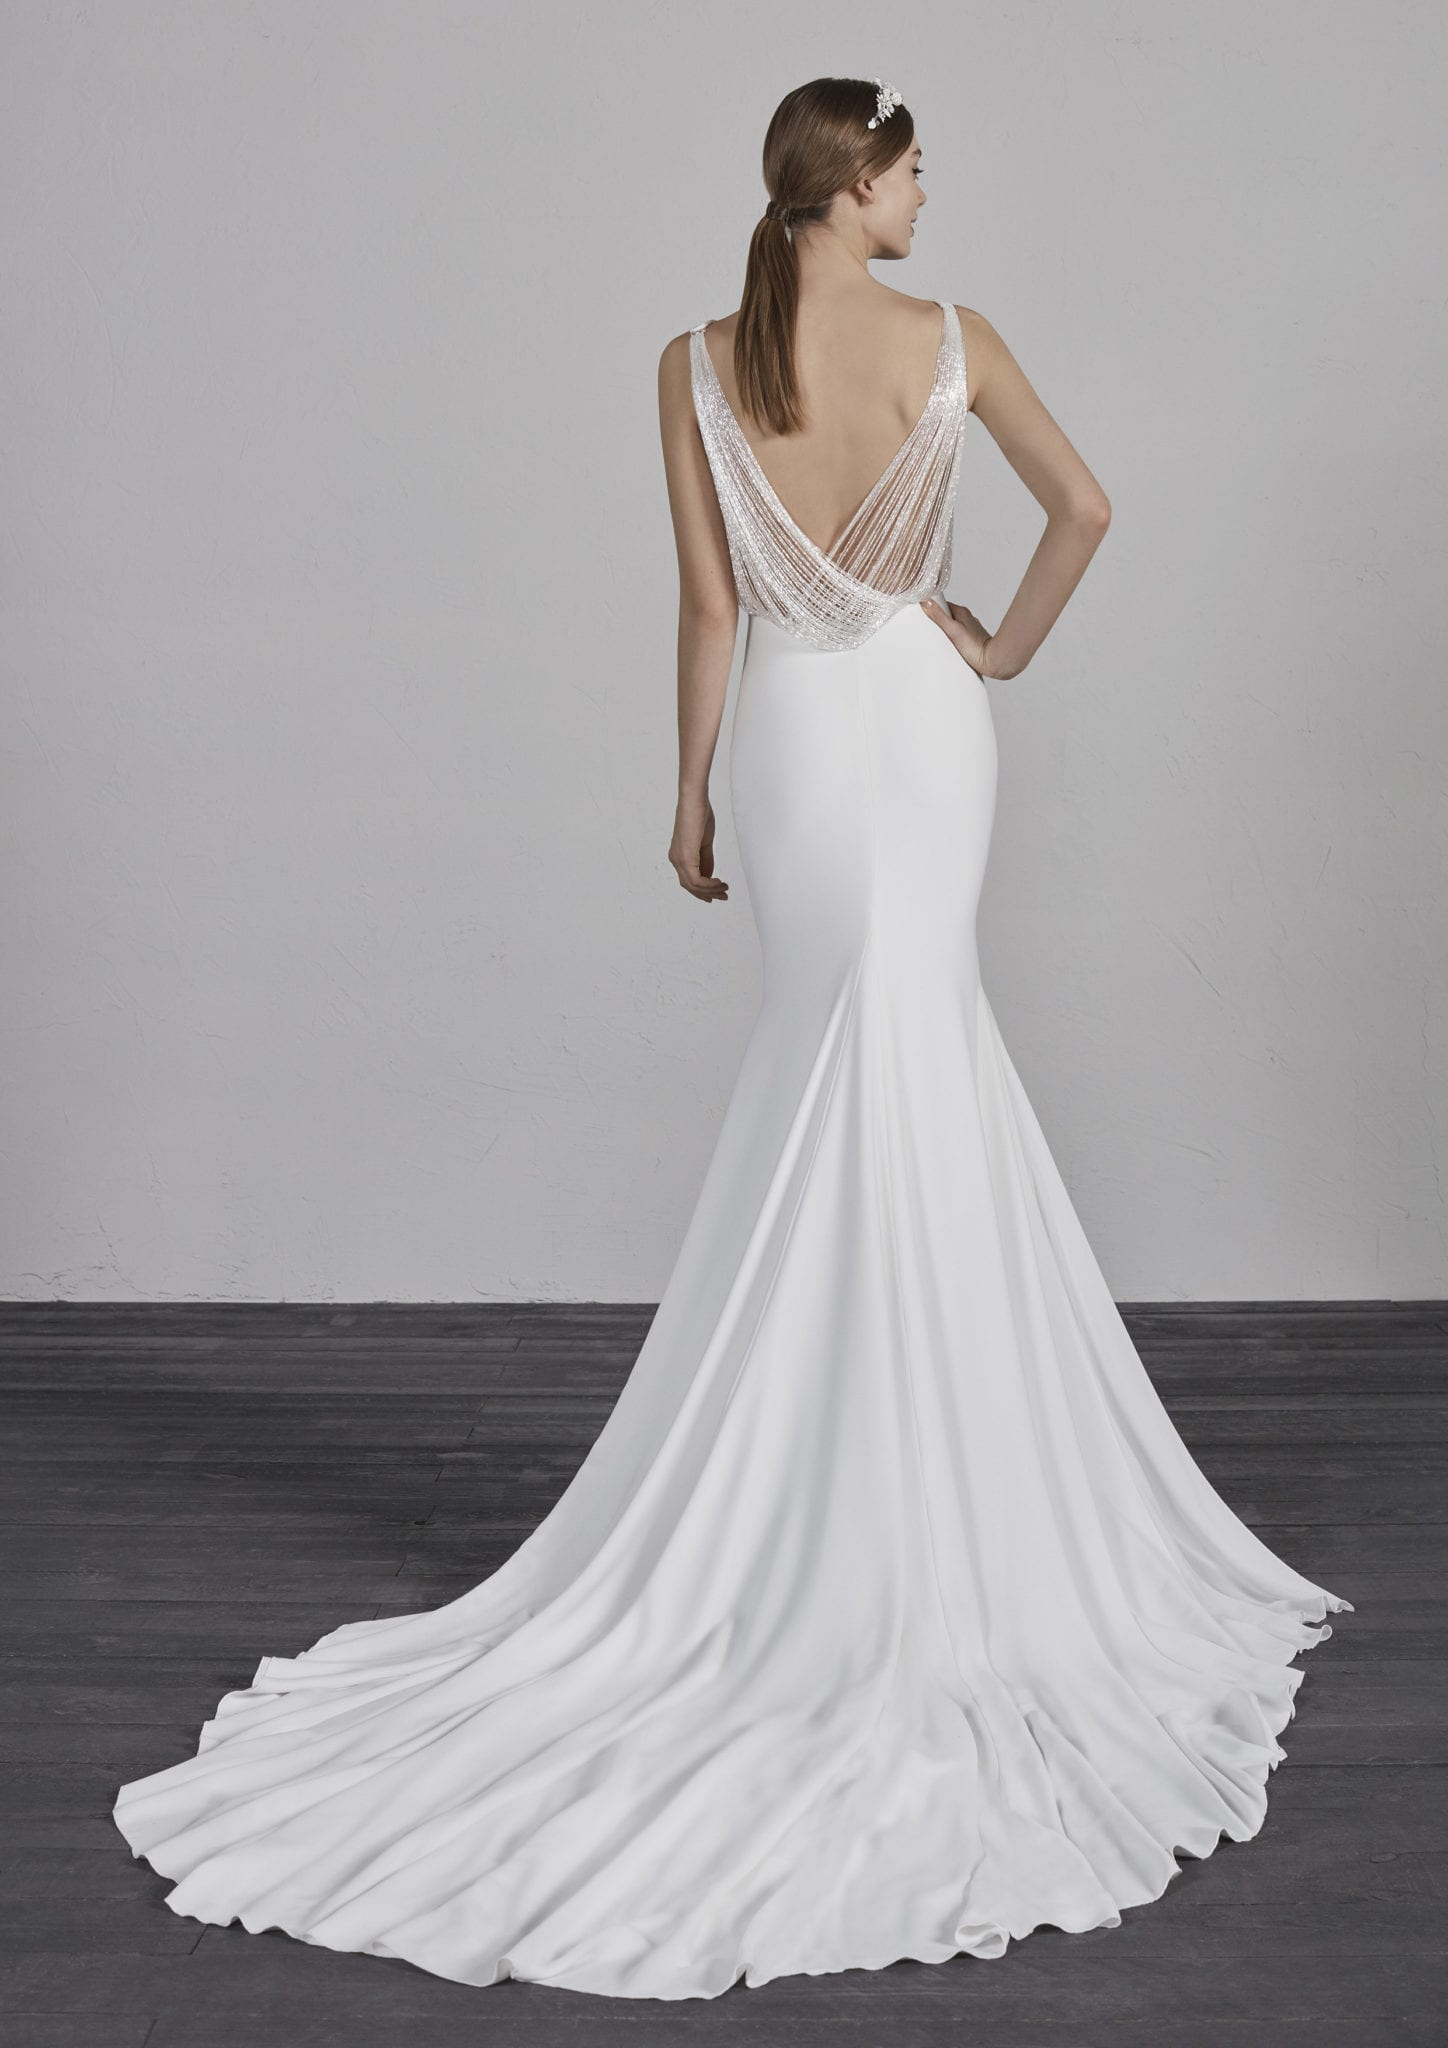 Eol Wedding Dress